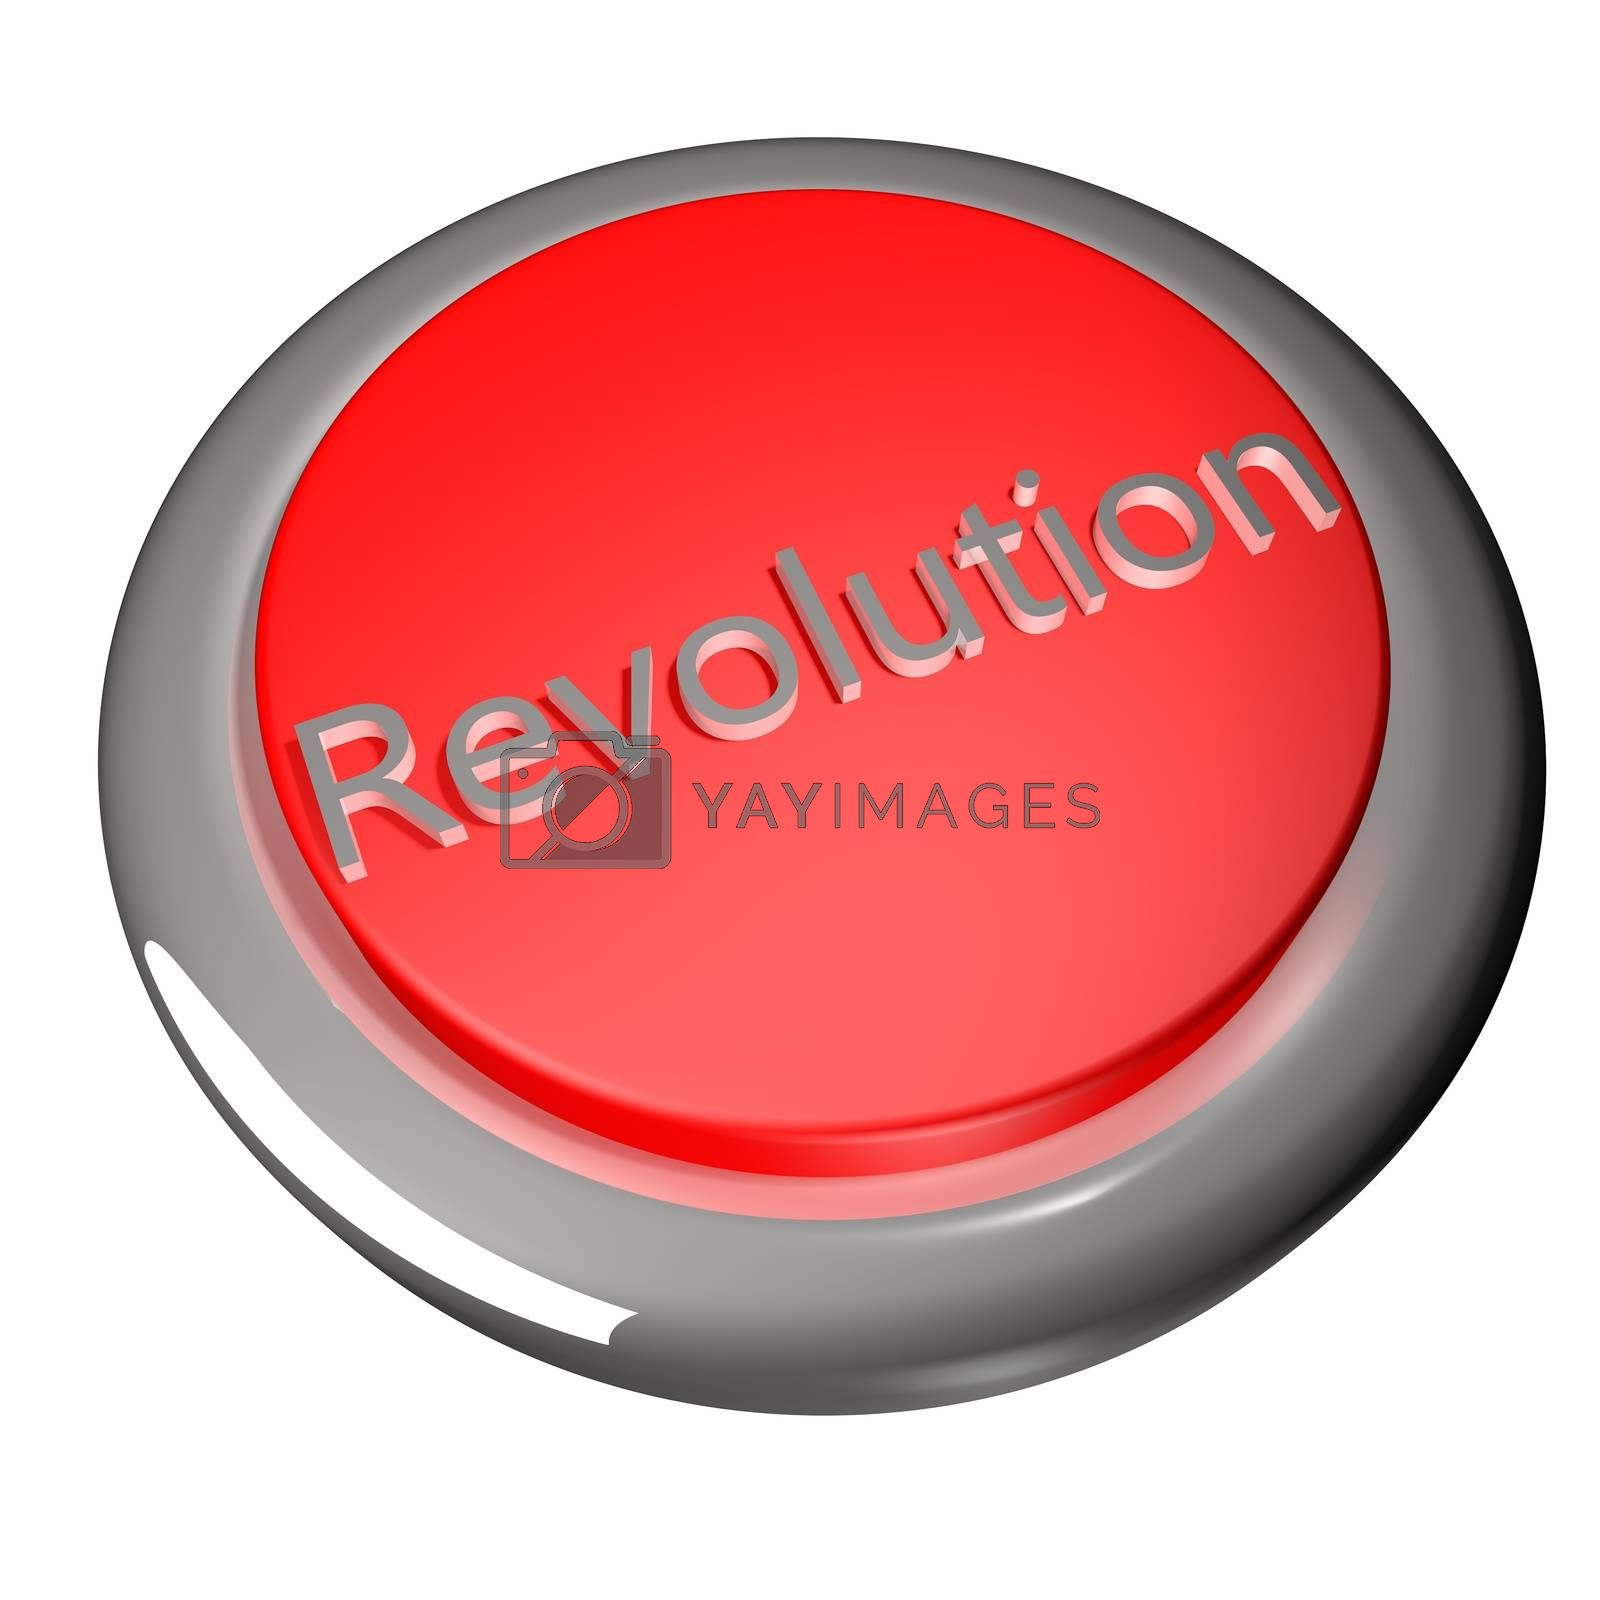 Royalty free image of Revolution button by Koufax73